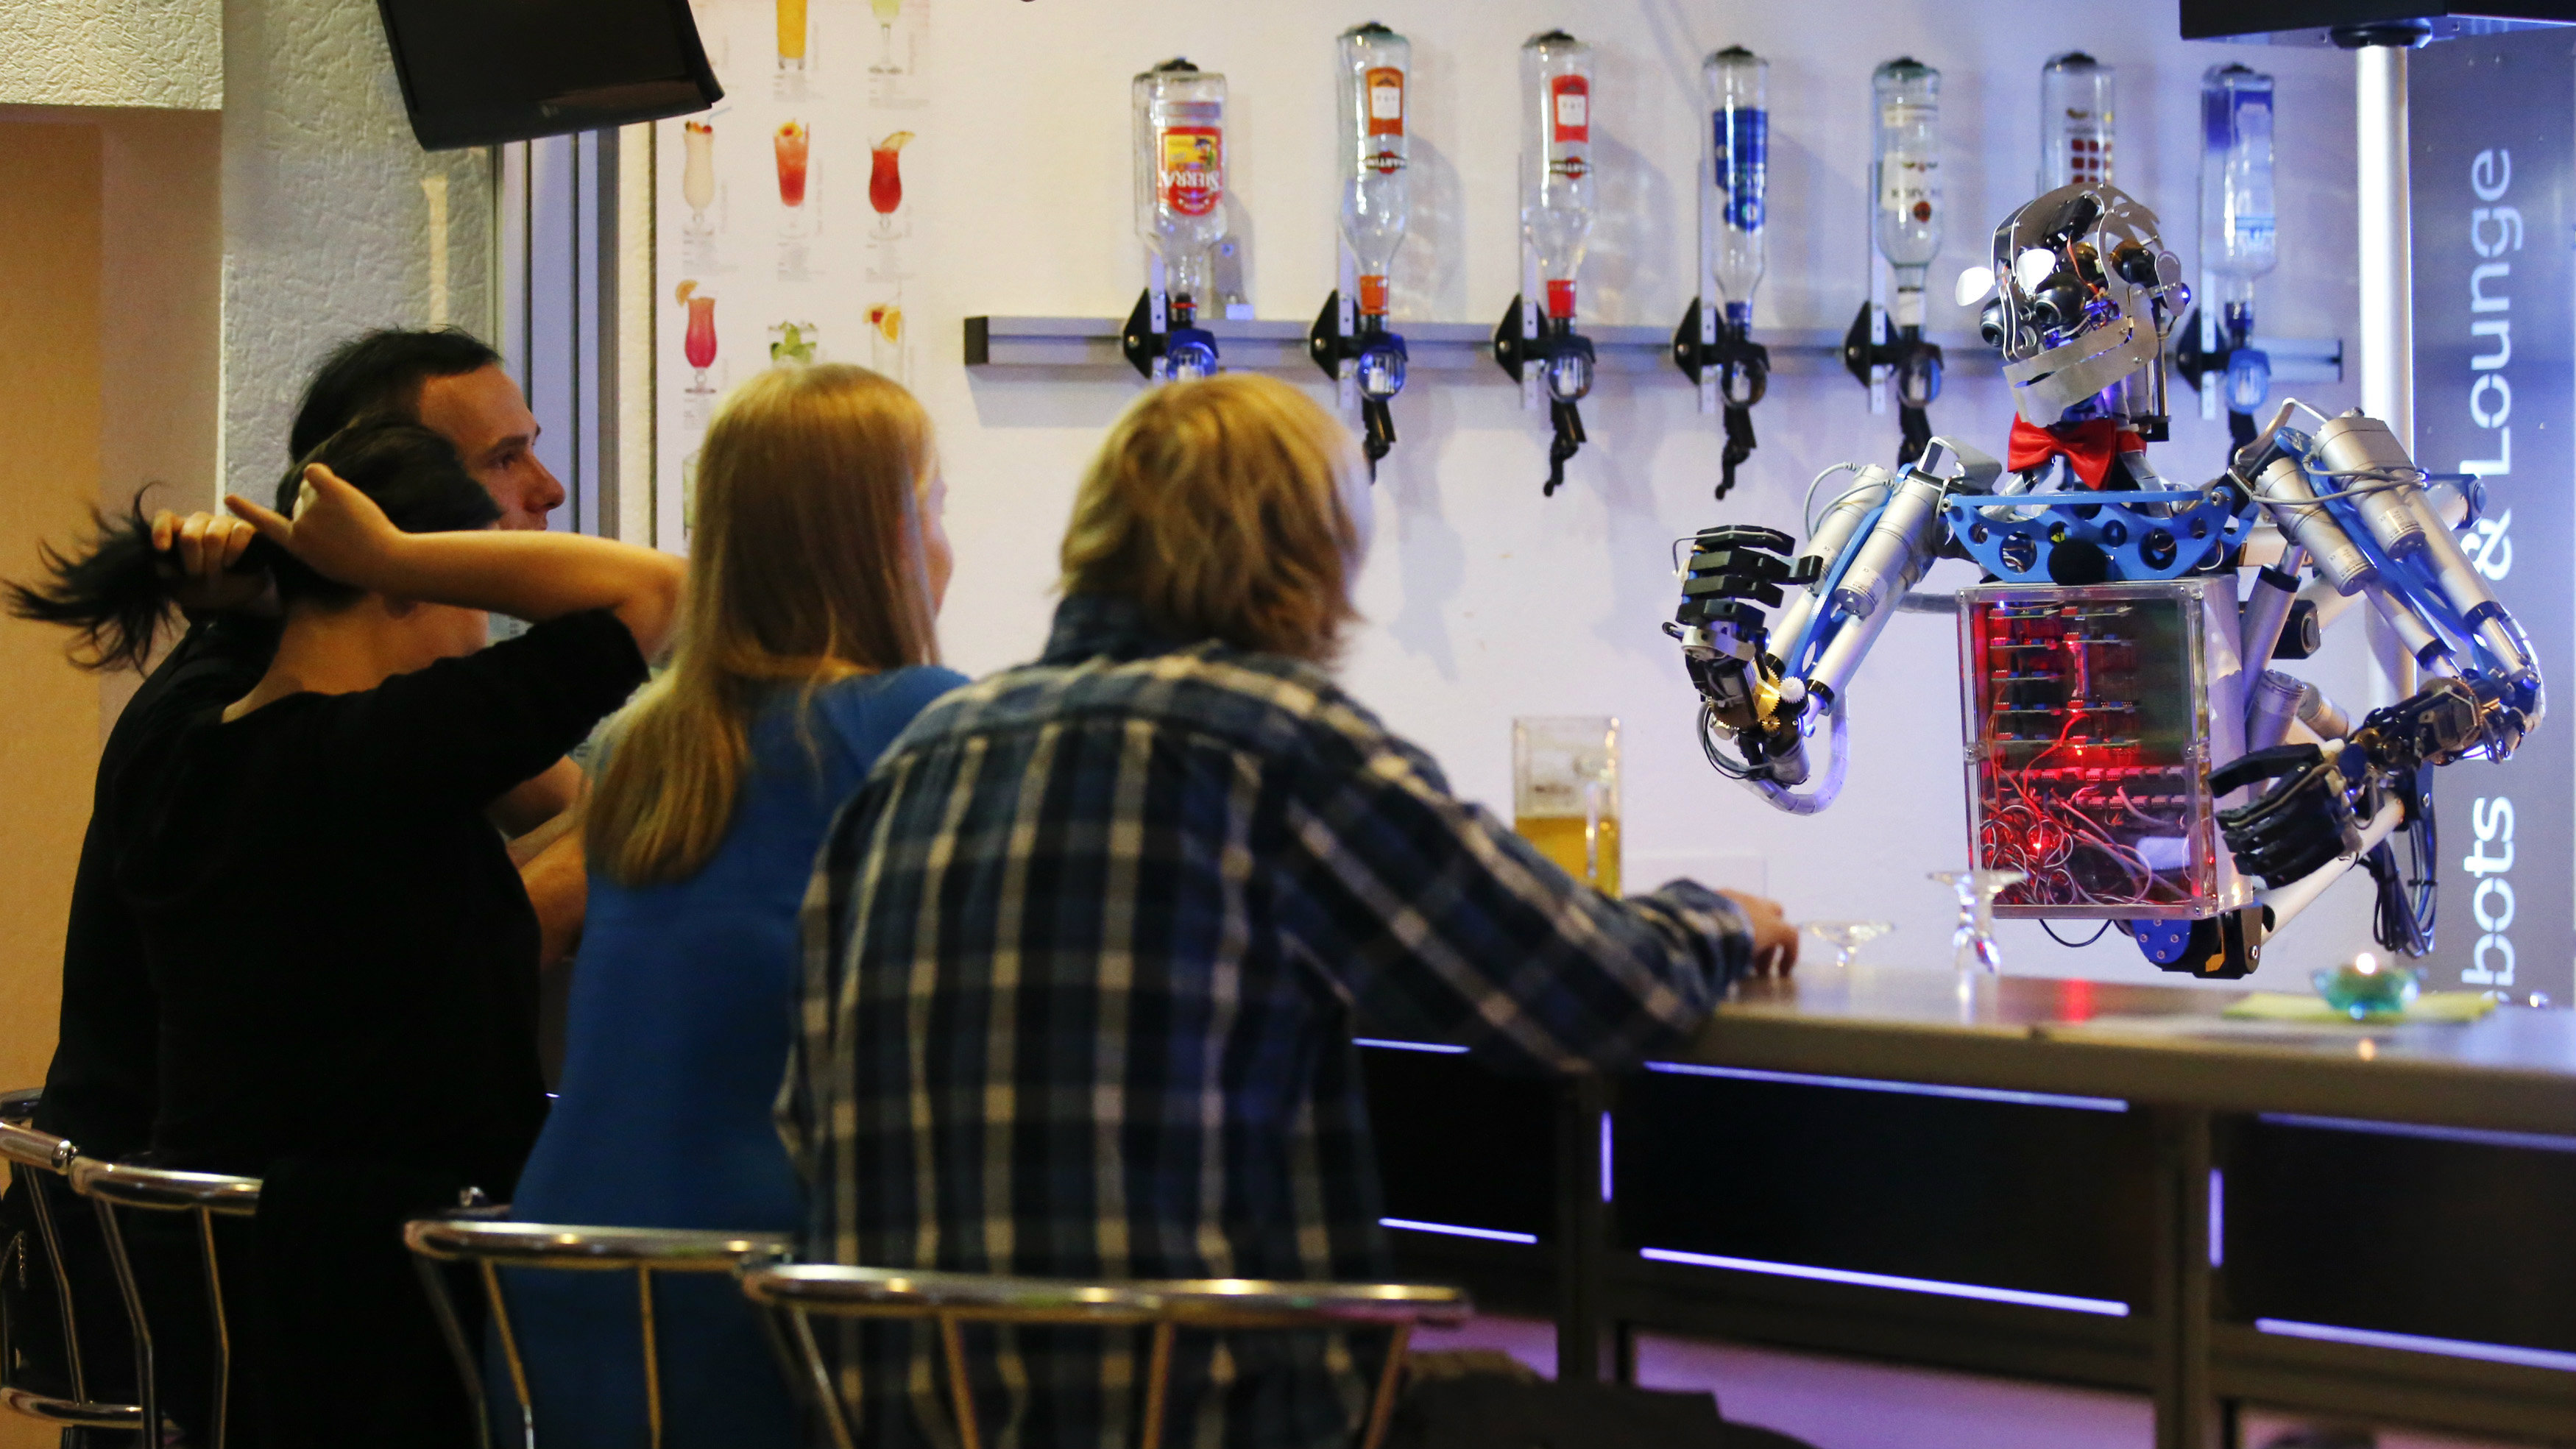 Robot bartender serves customers in Germany